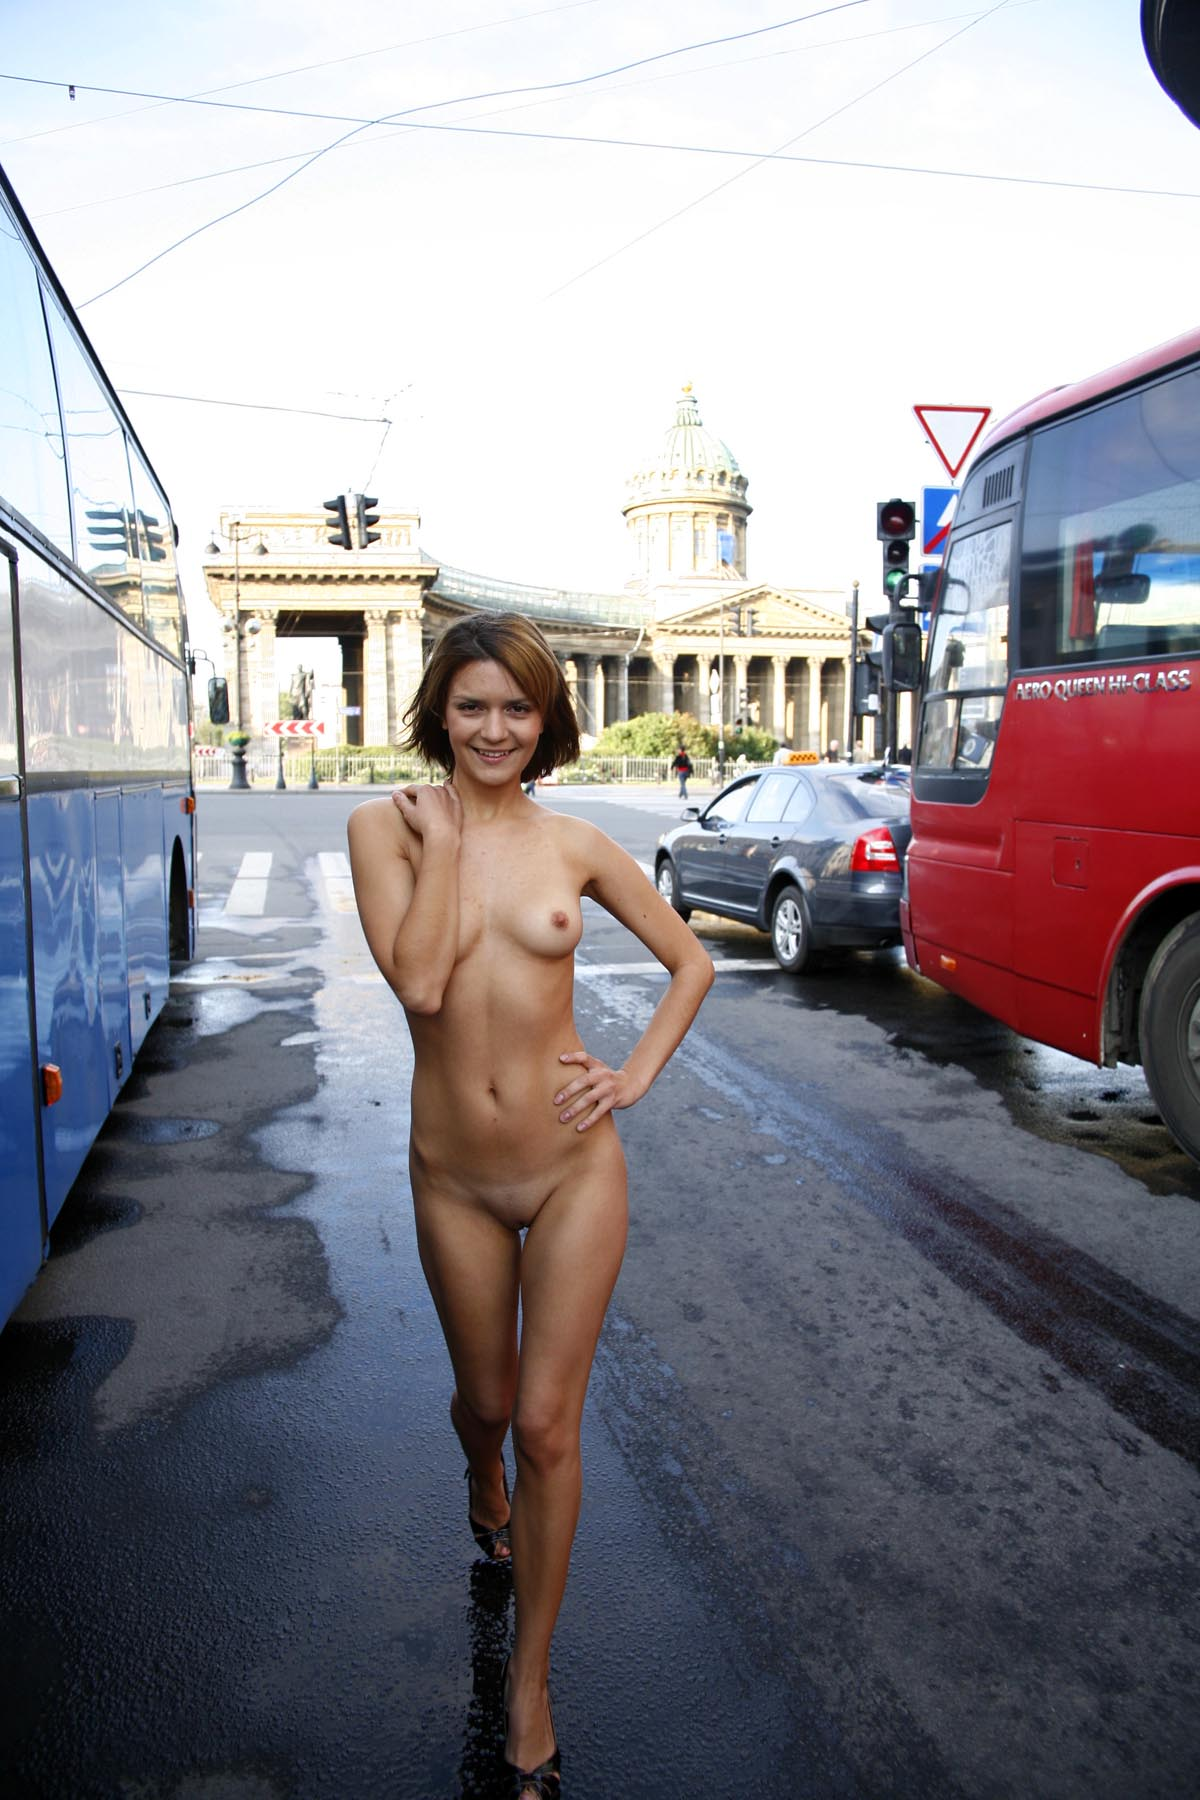 Shameless Girl Shows Her Naked Body On The Streets -3496